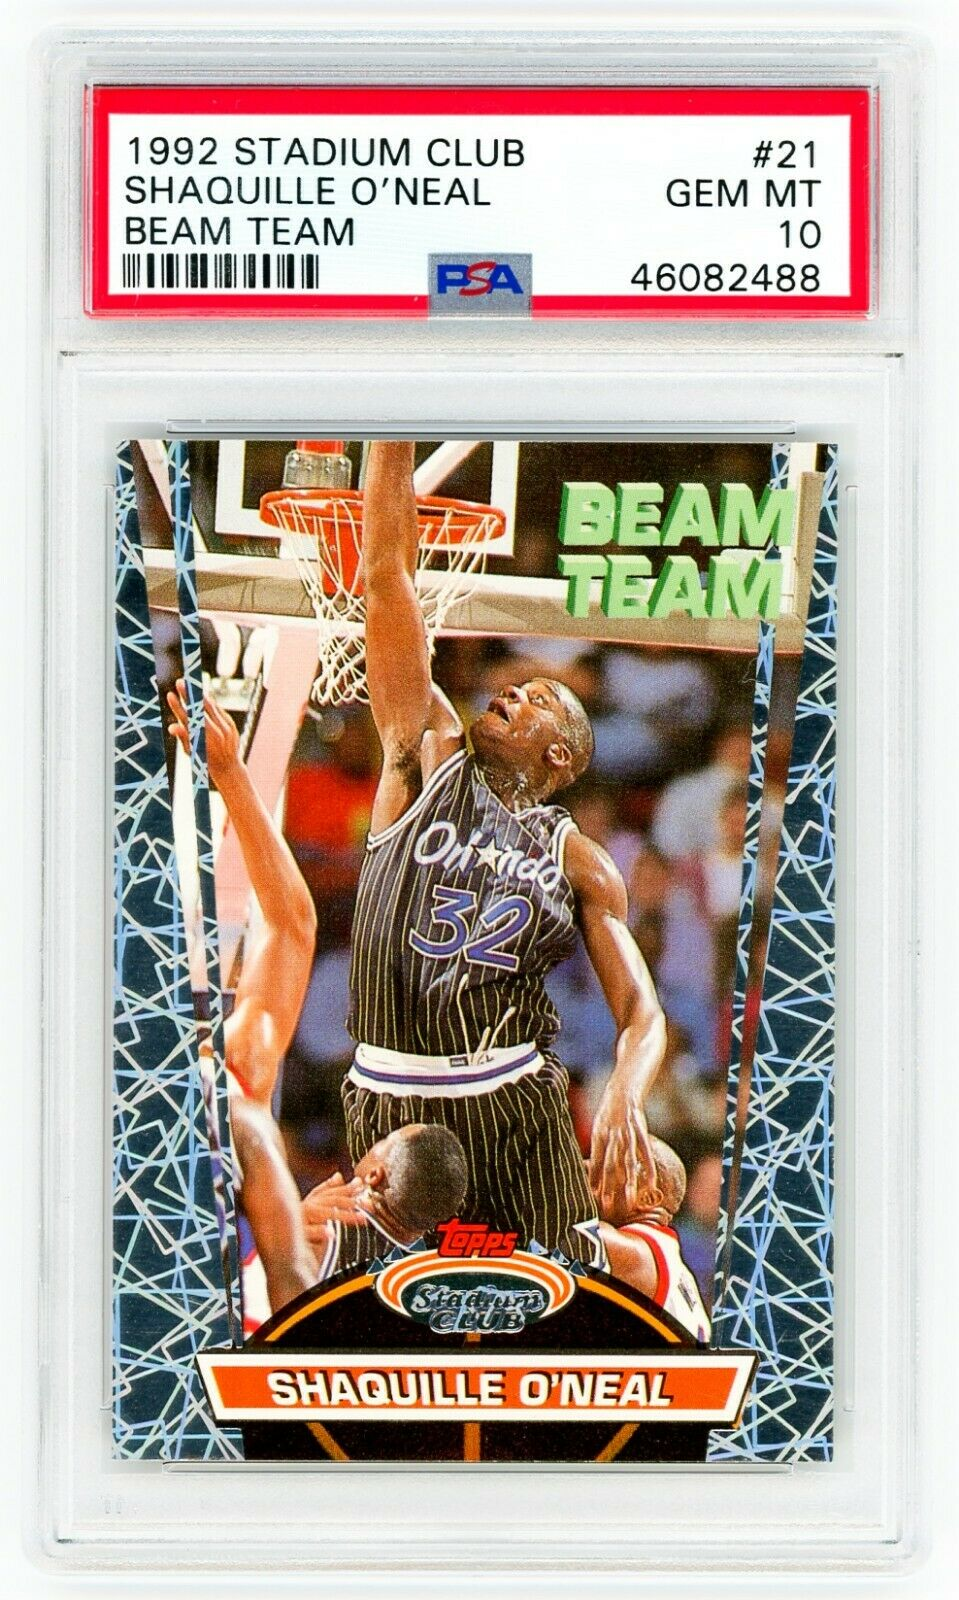 SHAQUILLE O'NEAL 1992 Stadium Club #21 Beam Team PSA 10 GEM MINT ROOKIE Card RC